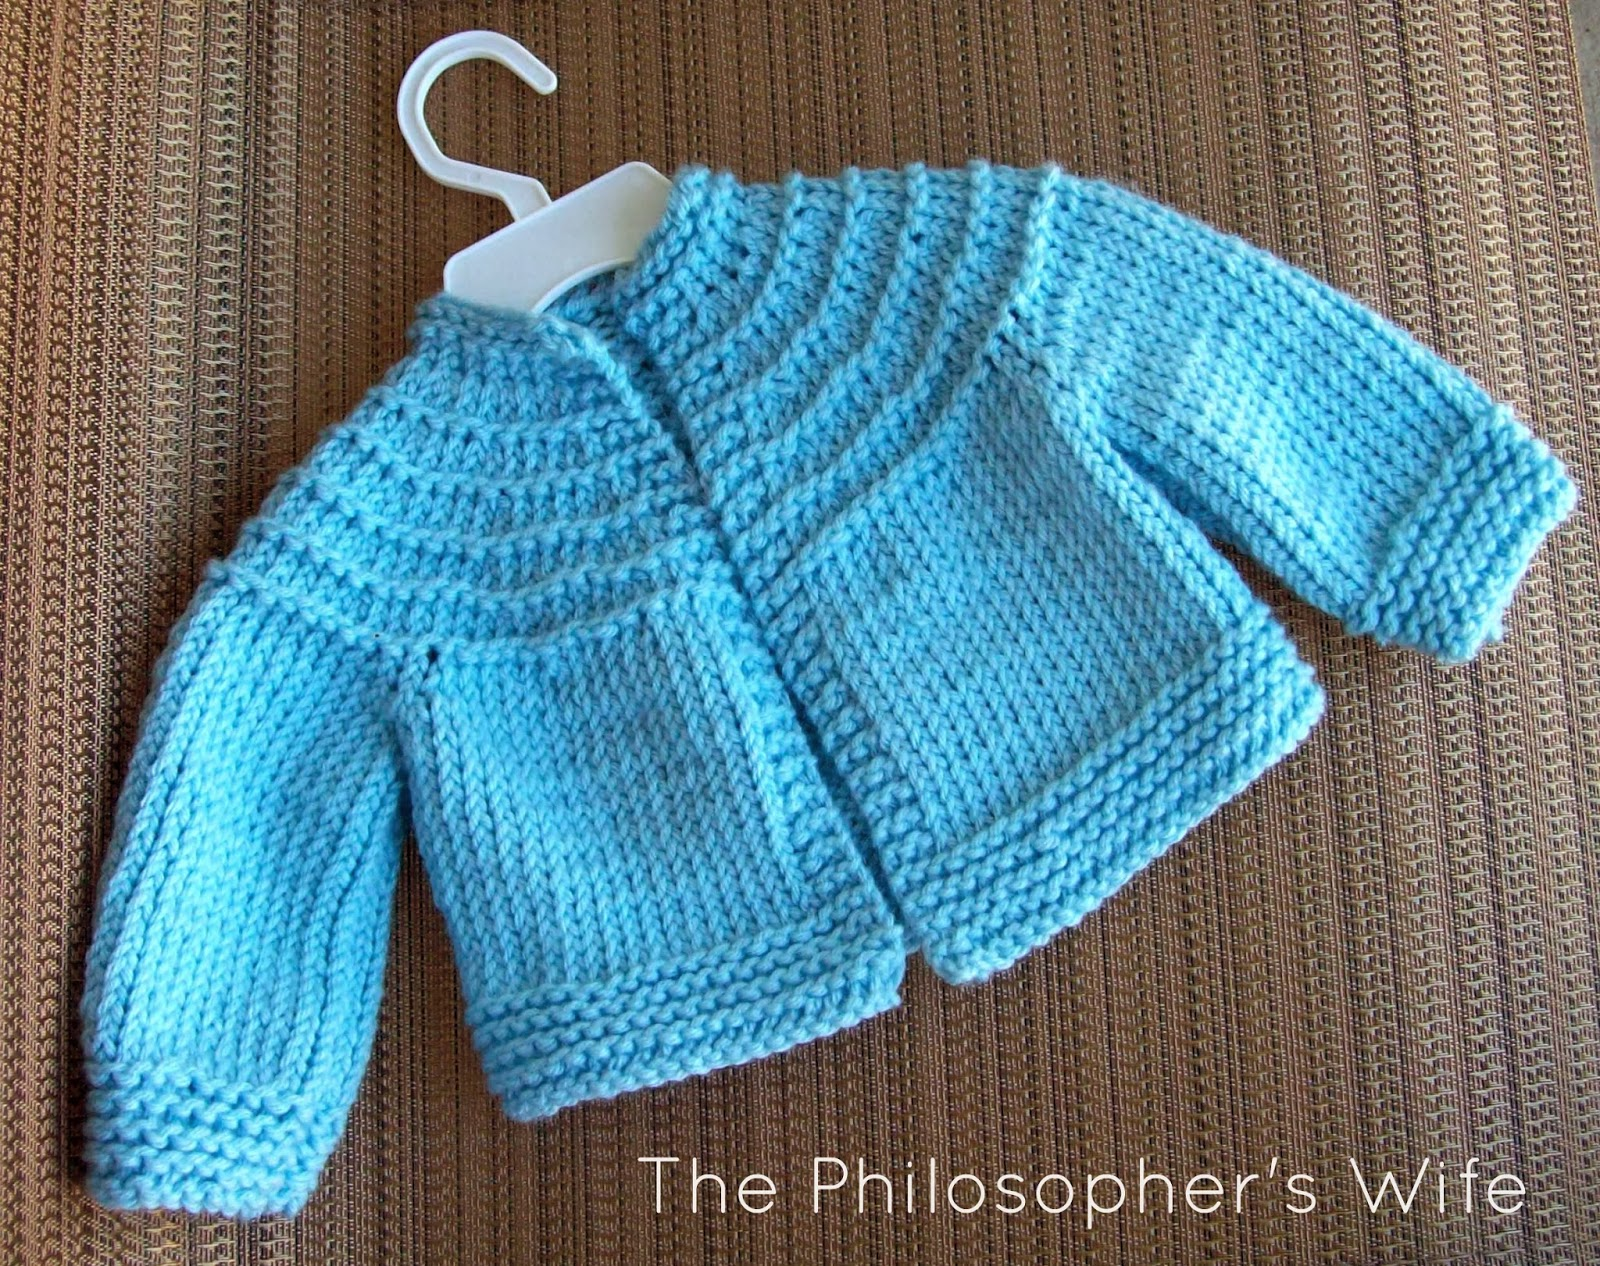 One Piece Sweater Knitting Pattern : Knit Baby Sweater Pattern One Piece - Long Sweater Jacket